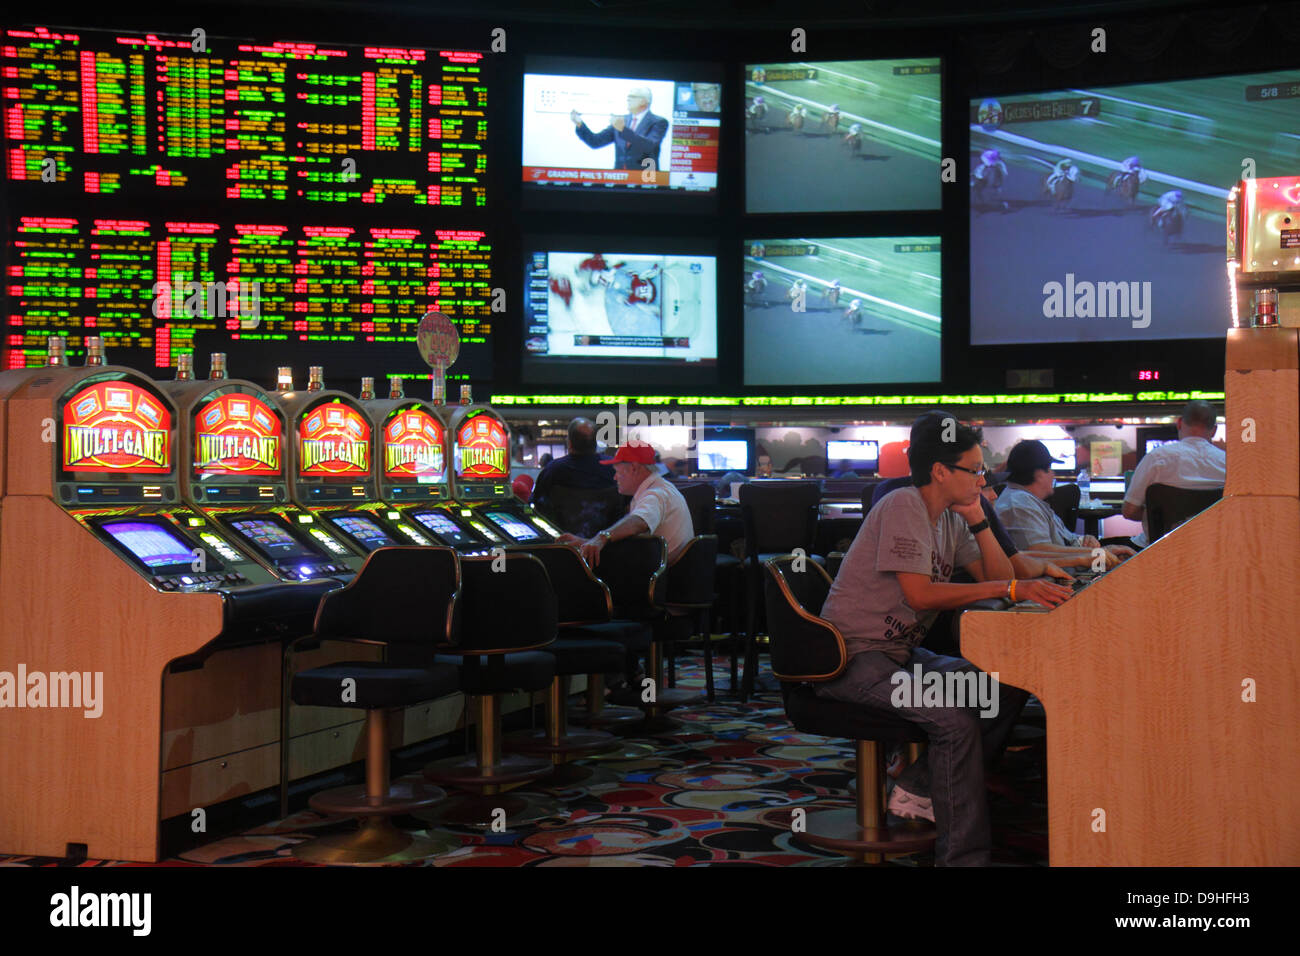 Nevada Las Vegas Las Vegas Hotel & Casino LVH race sports book betting odds gamblers gambling monitors big screens - Stock Image